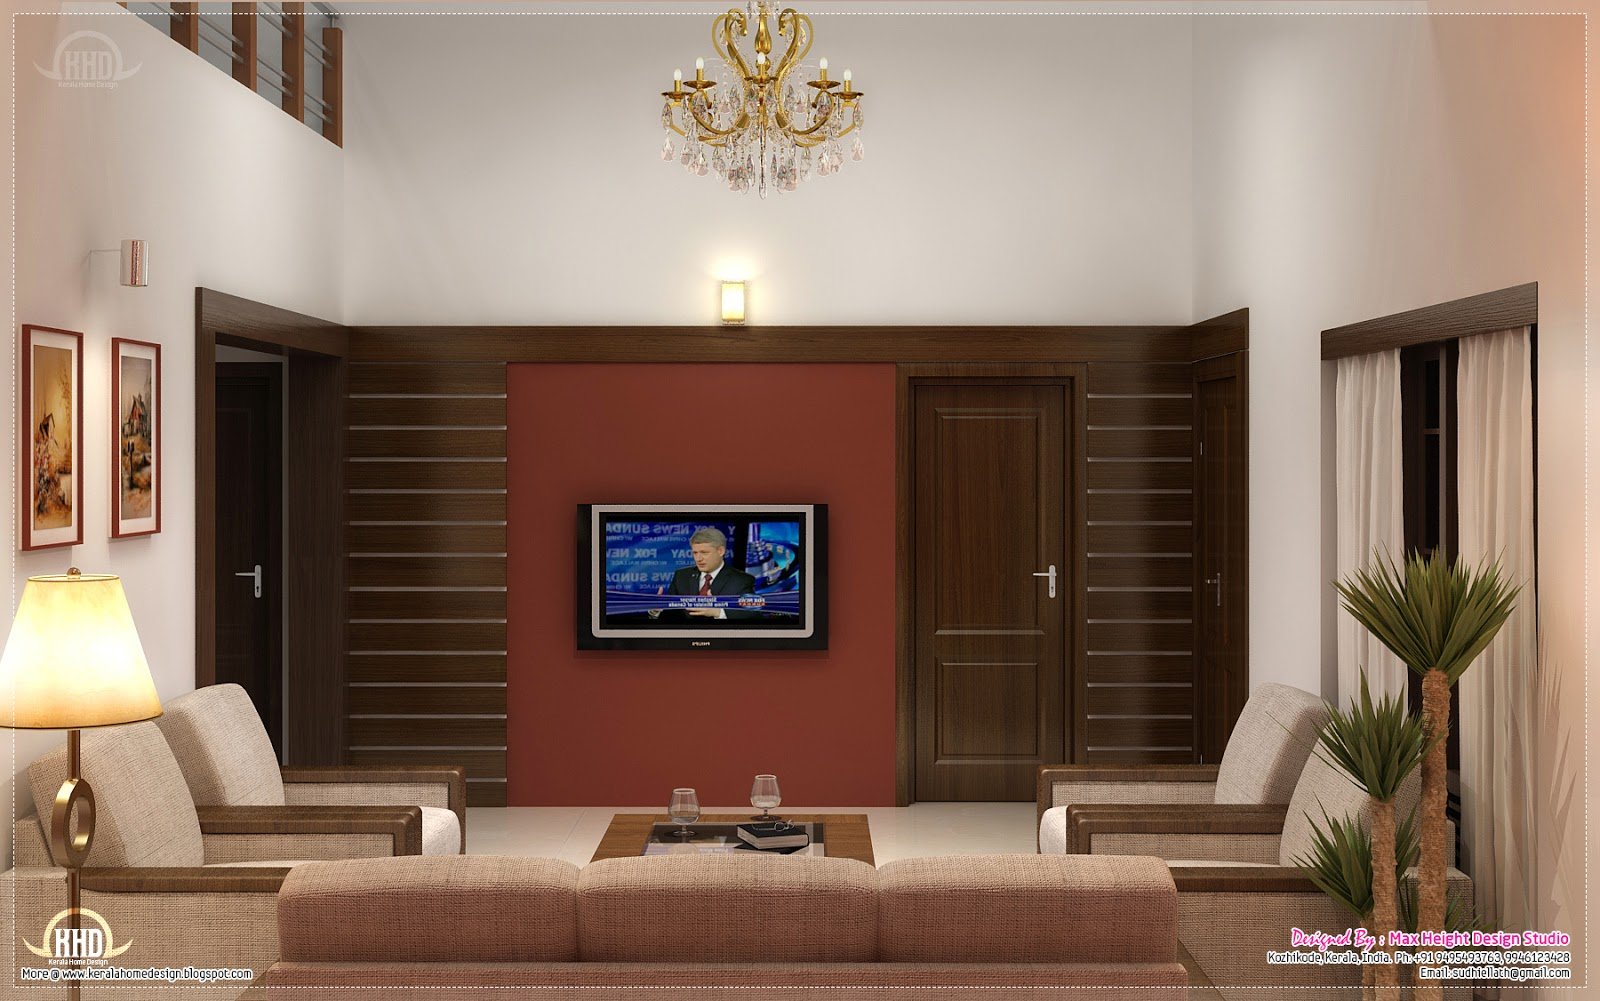 Home interior design ideas kerala home design and floor for House interior living room